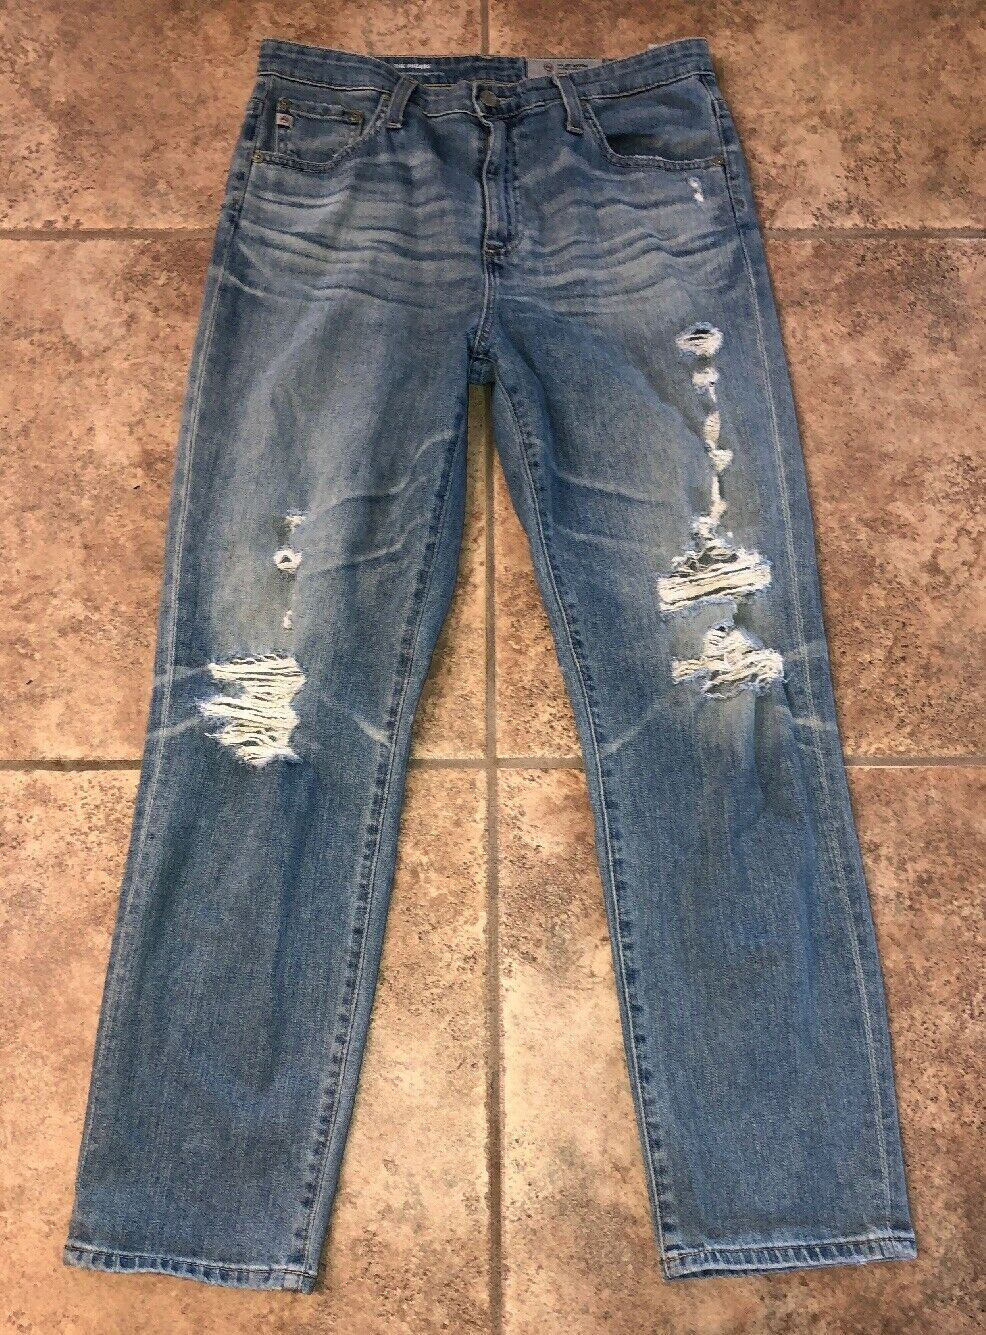 Adriano goldschmied THE PHOEBE Womens High Waist Tapered Leg Jeans Size 30R